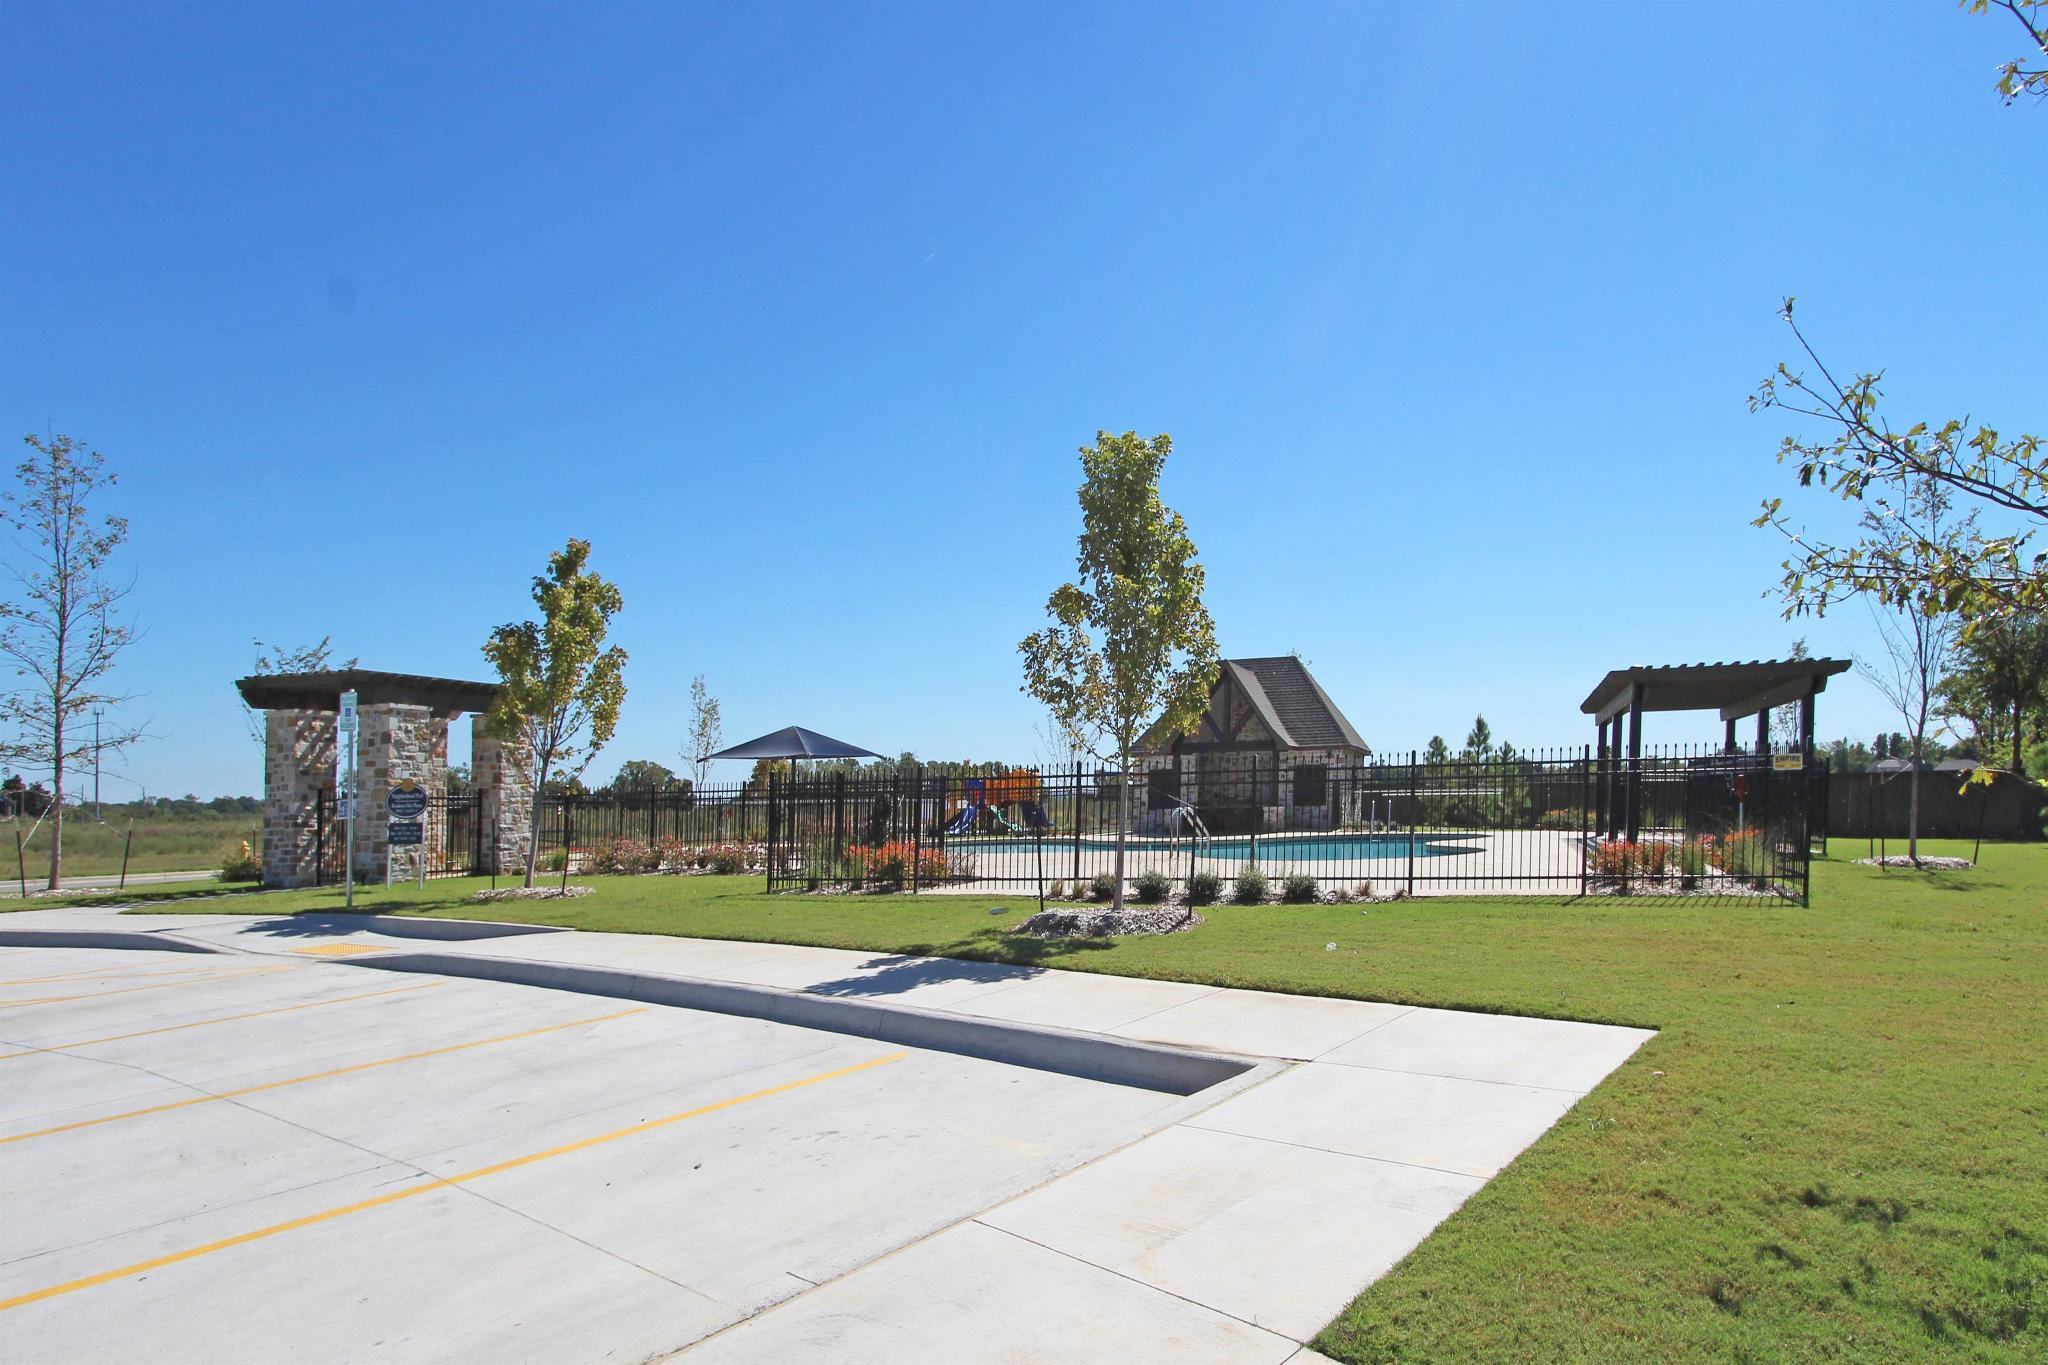 'Willow Creek Bungalows' by Simmons Homes in Tulsa